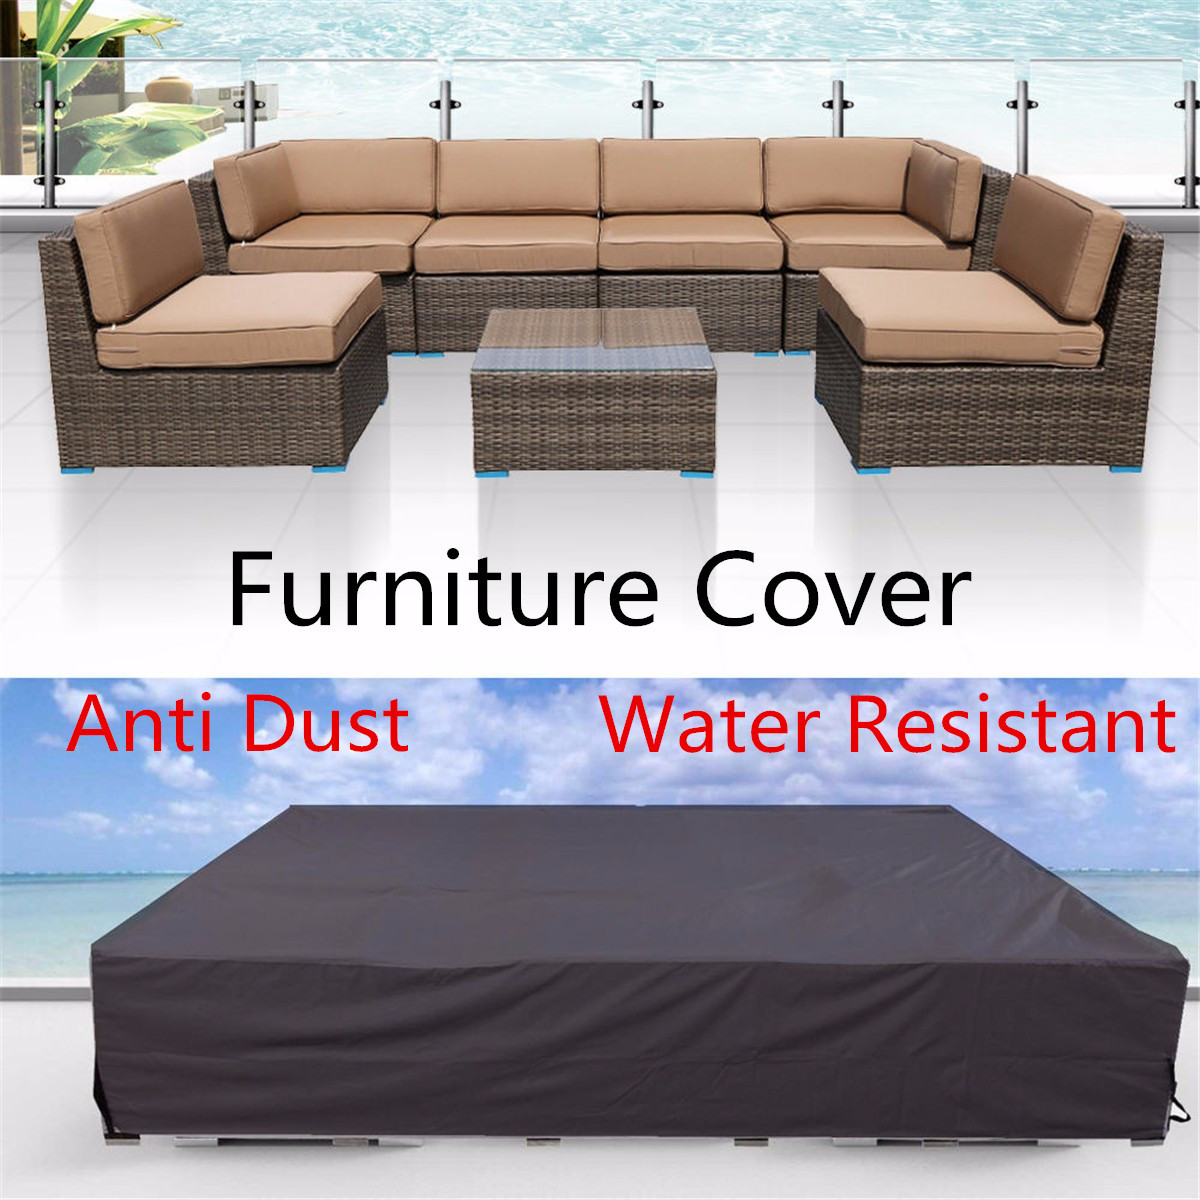 Heavy Outdoor Furniture Cover Waterproof Patio Garden Wicker Chairs